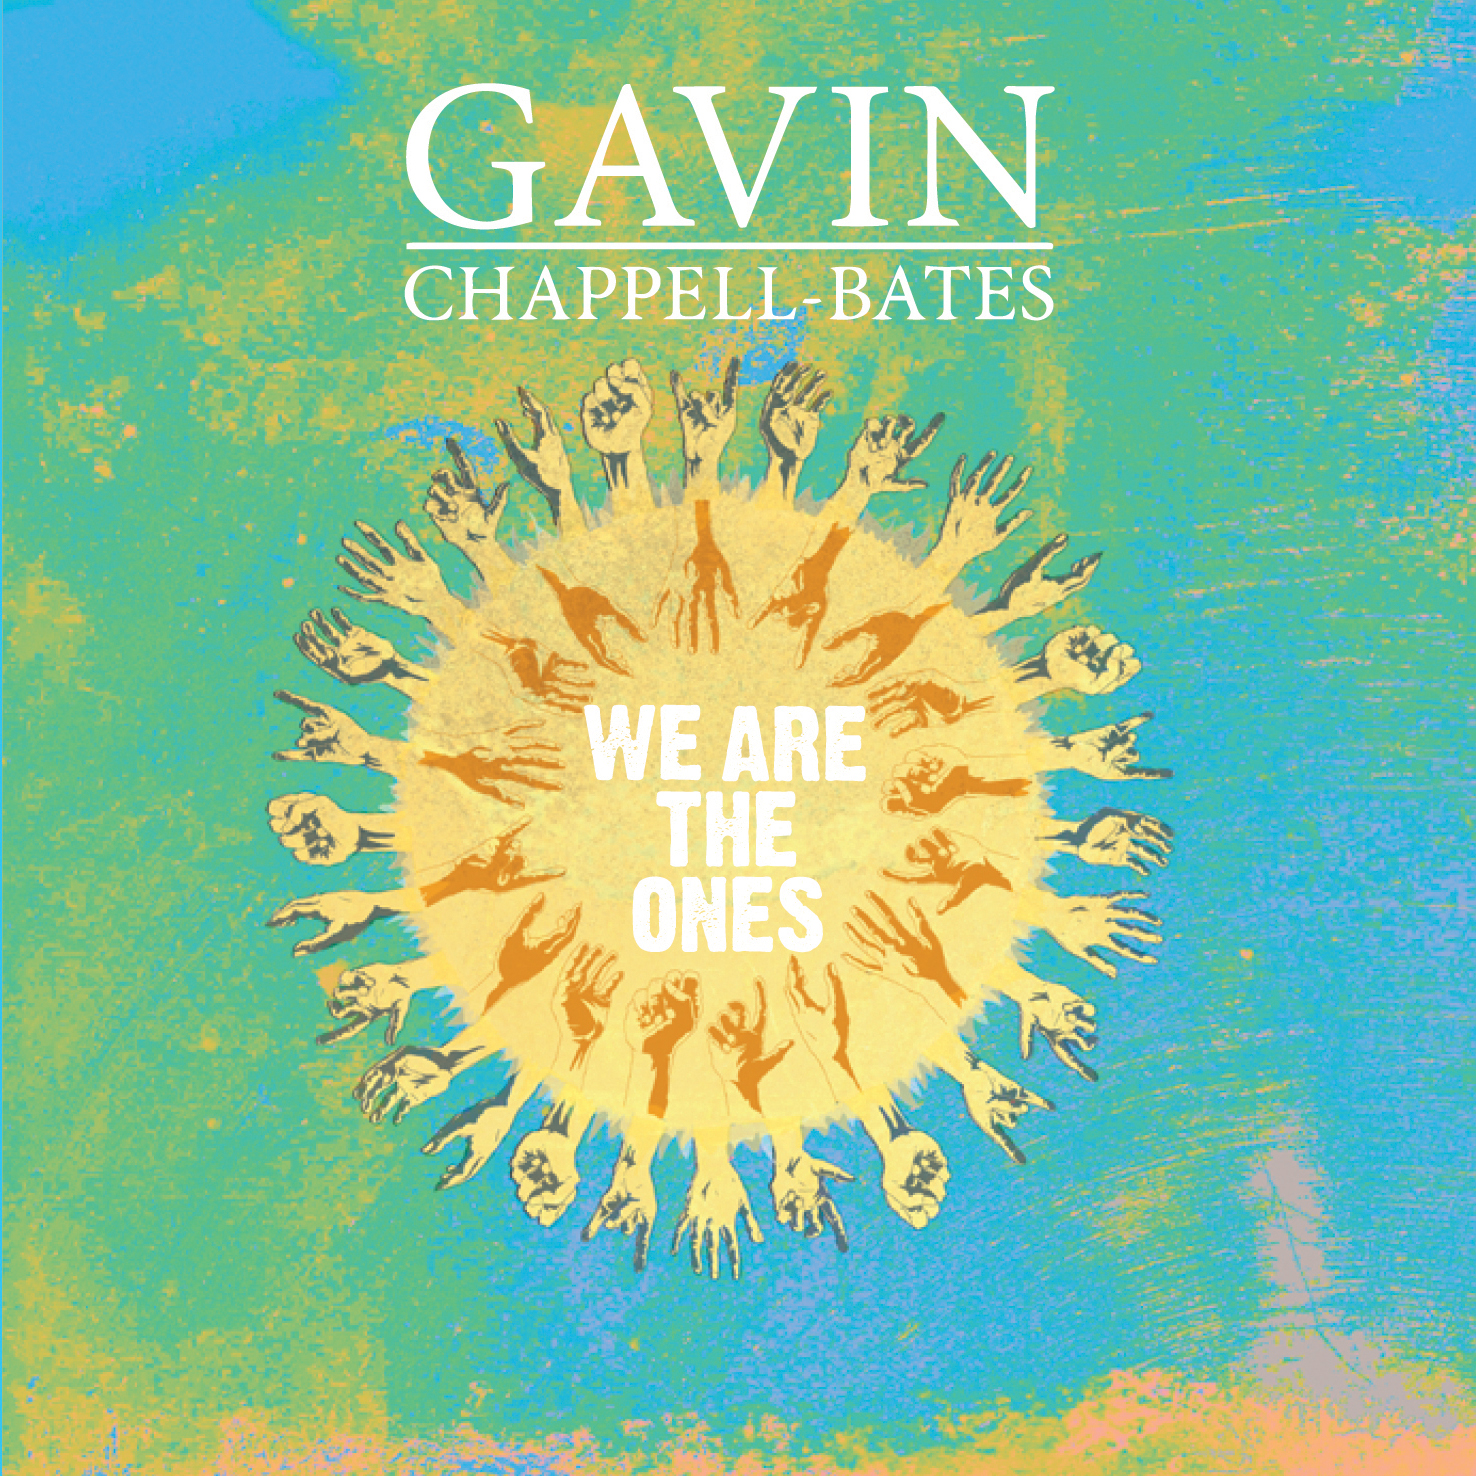 We Are The Ones cover (Stewart Harris design)